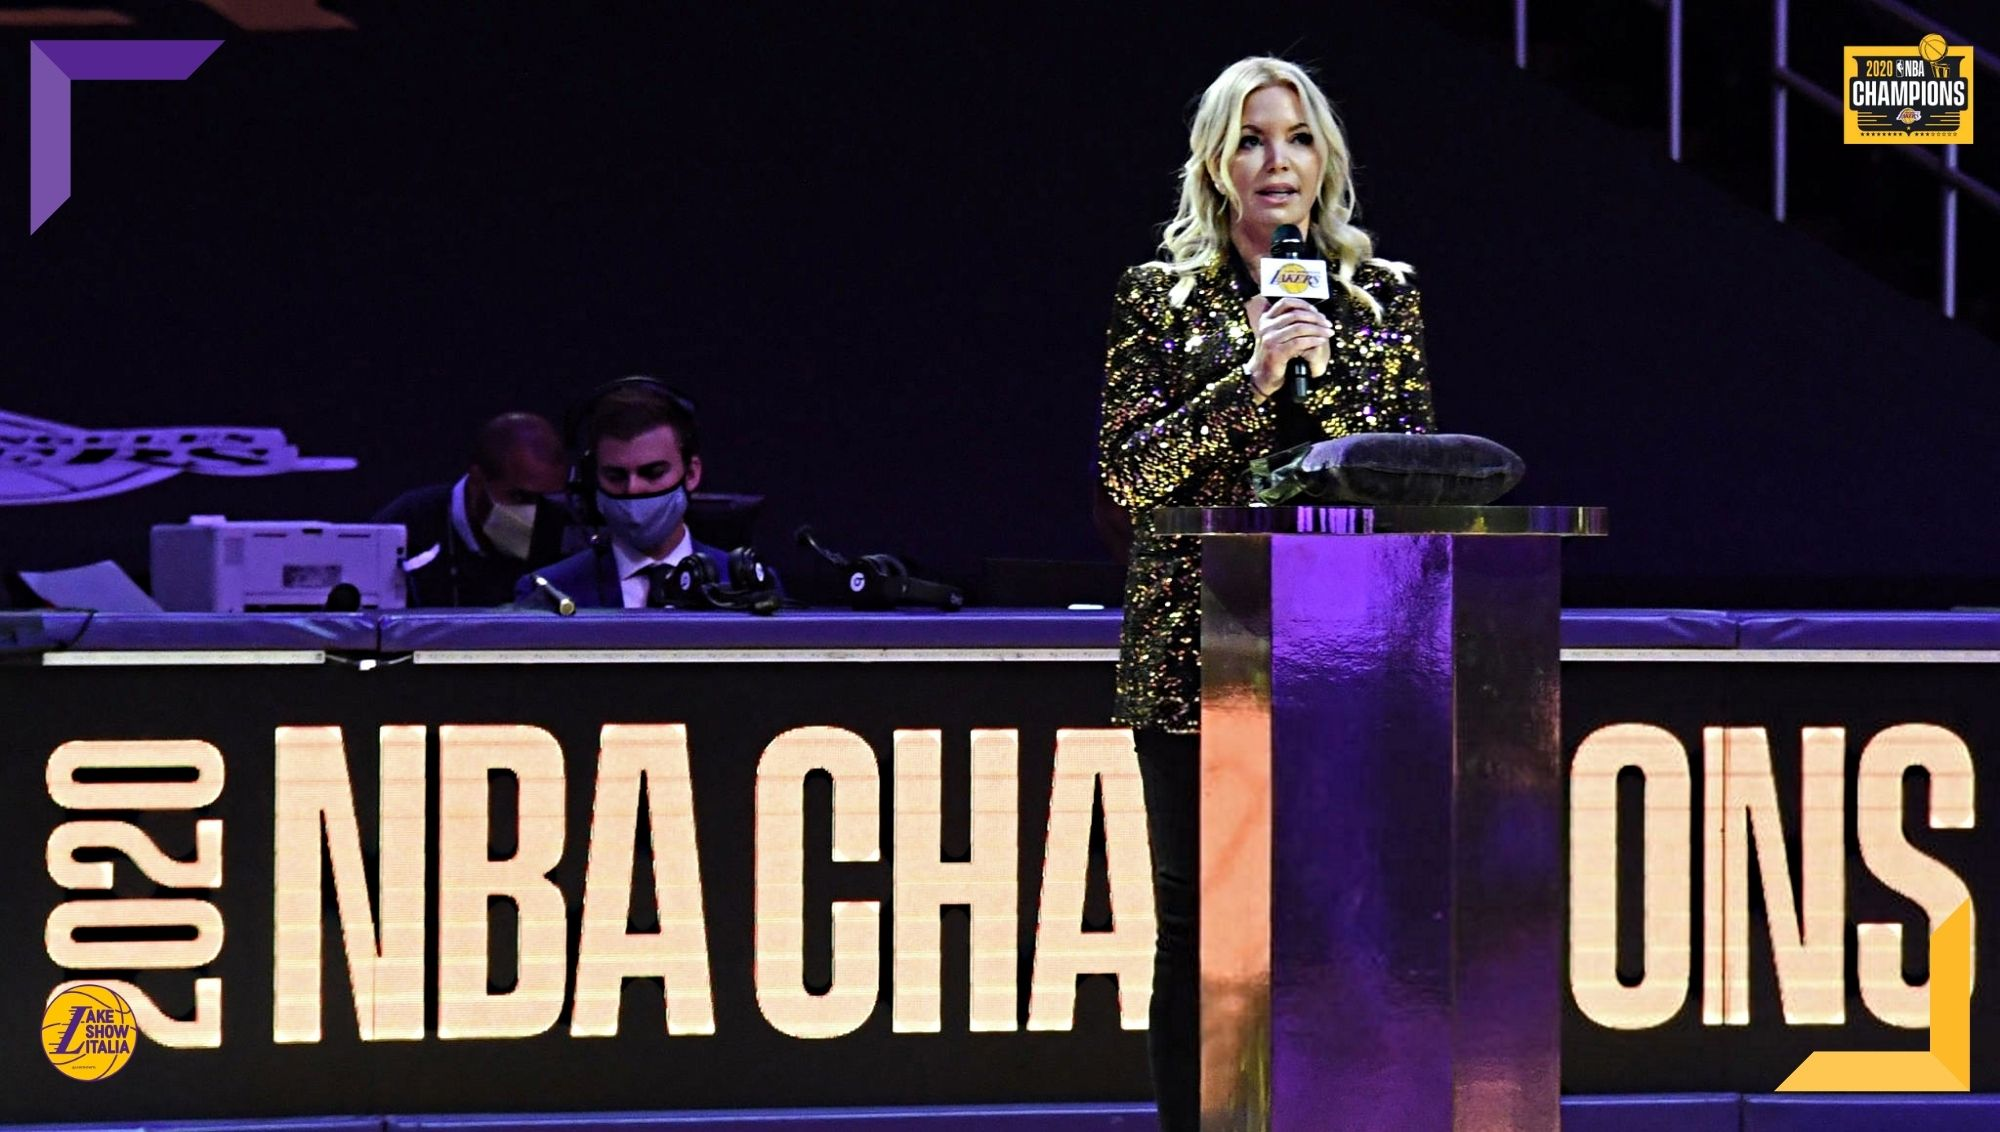 Jeanie Buss si racconta: la fiducia del padre, i legami con Magic e Phil, i rapporti con Kobe e LeBron. La storia dell'owner dei Los Angeles Lakers.